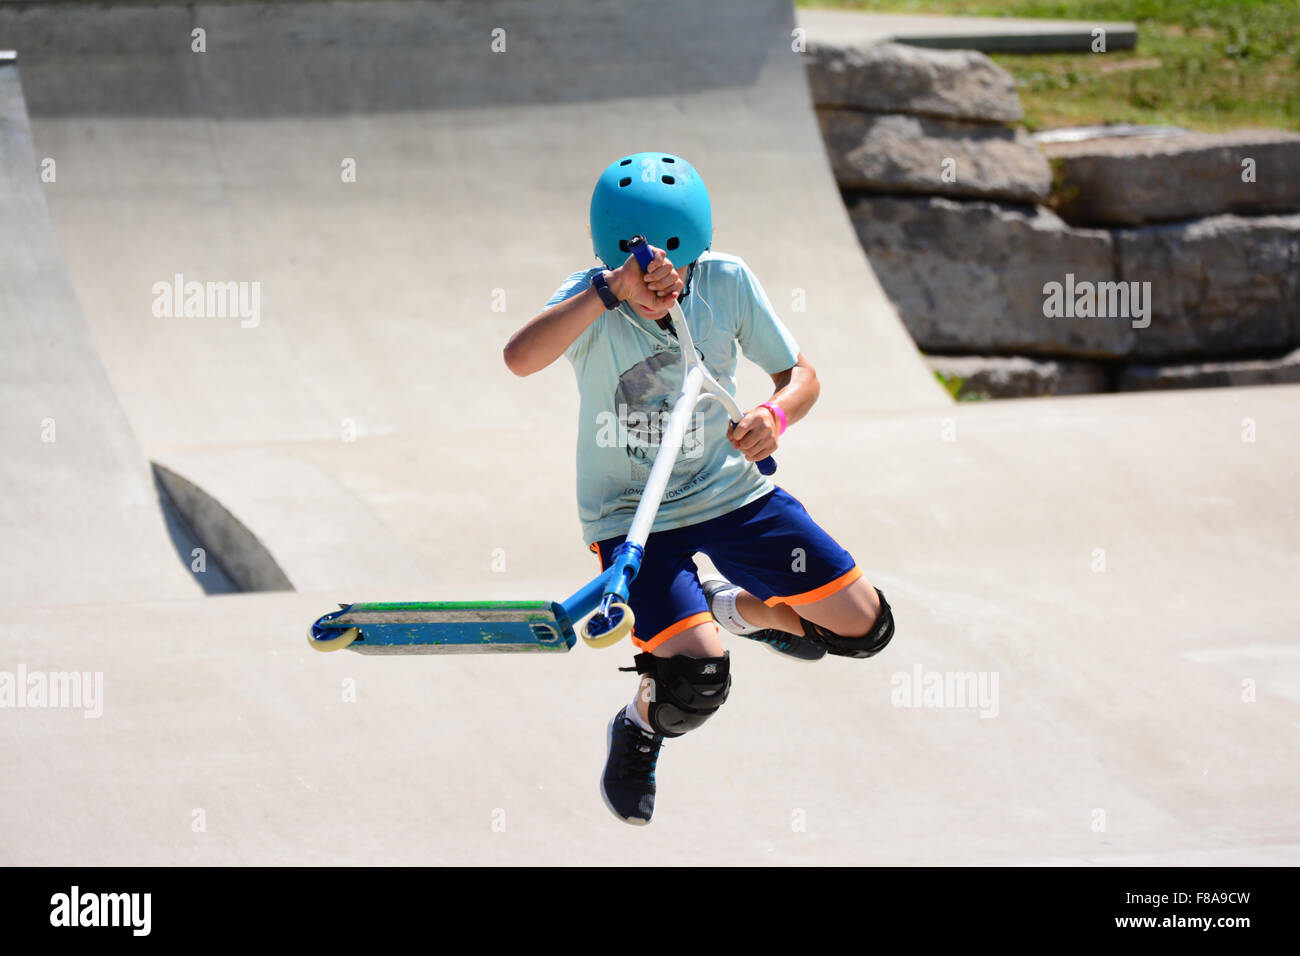 Extreme sport, youth activity - Stock Image